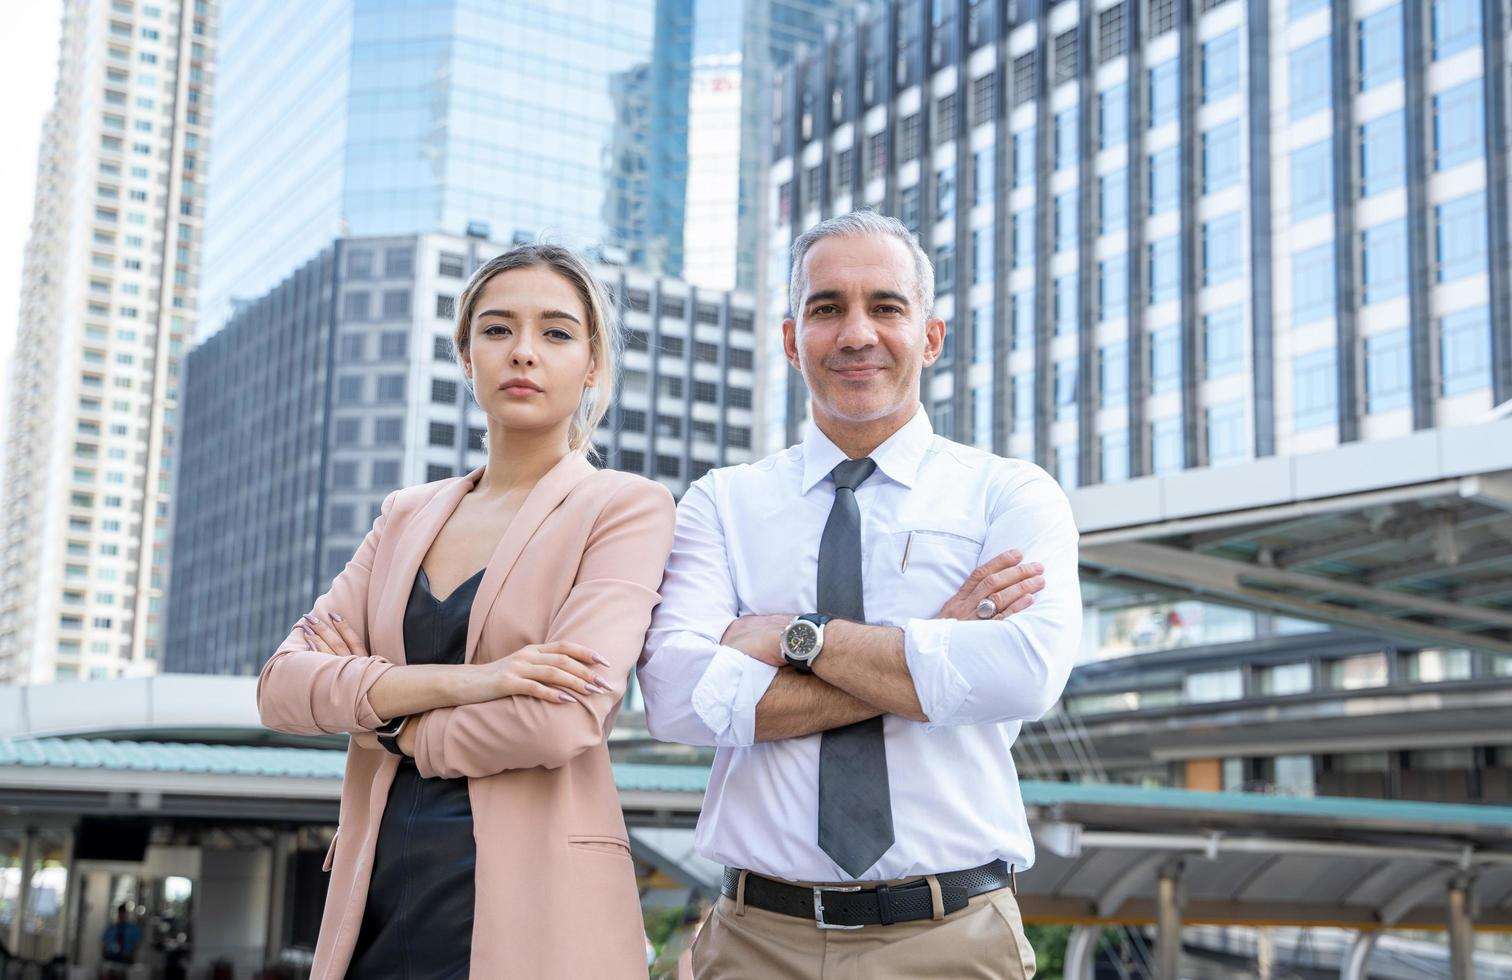 Man and woman with office buildings photo